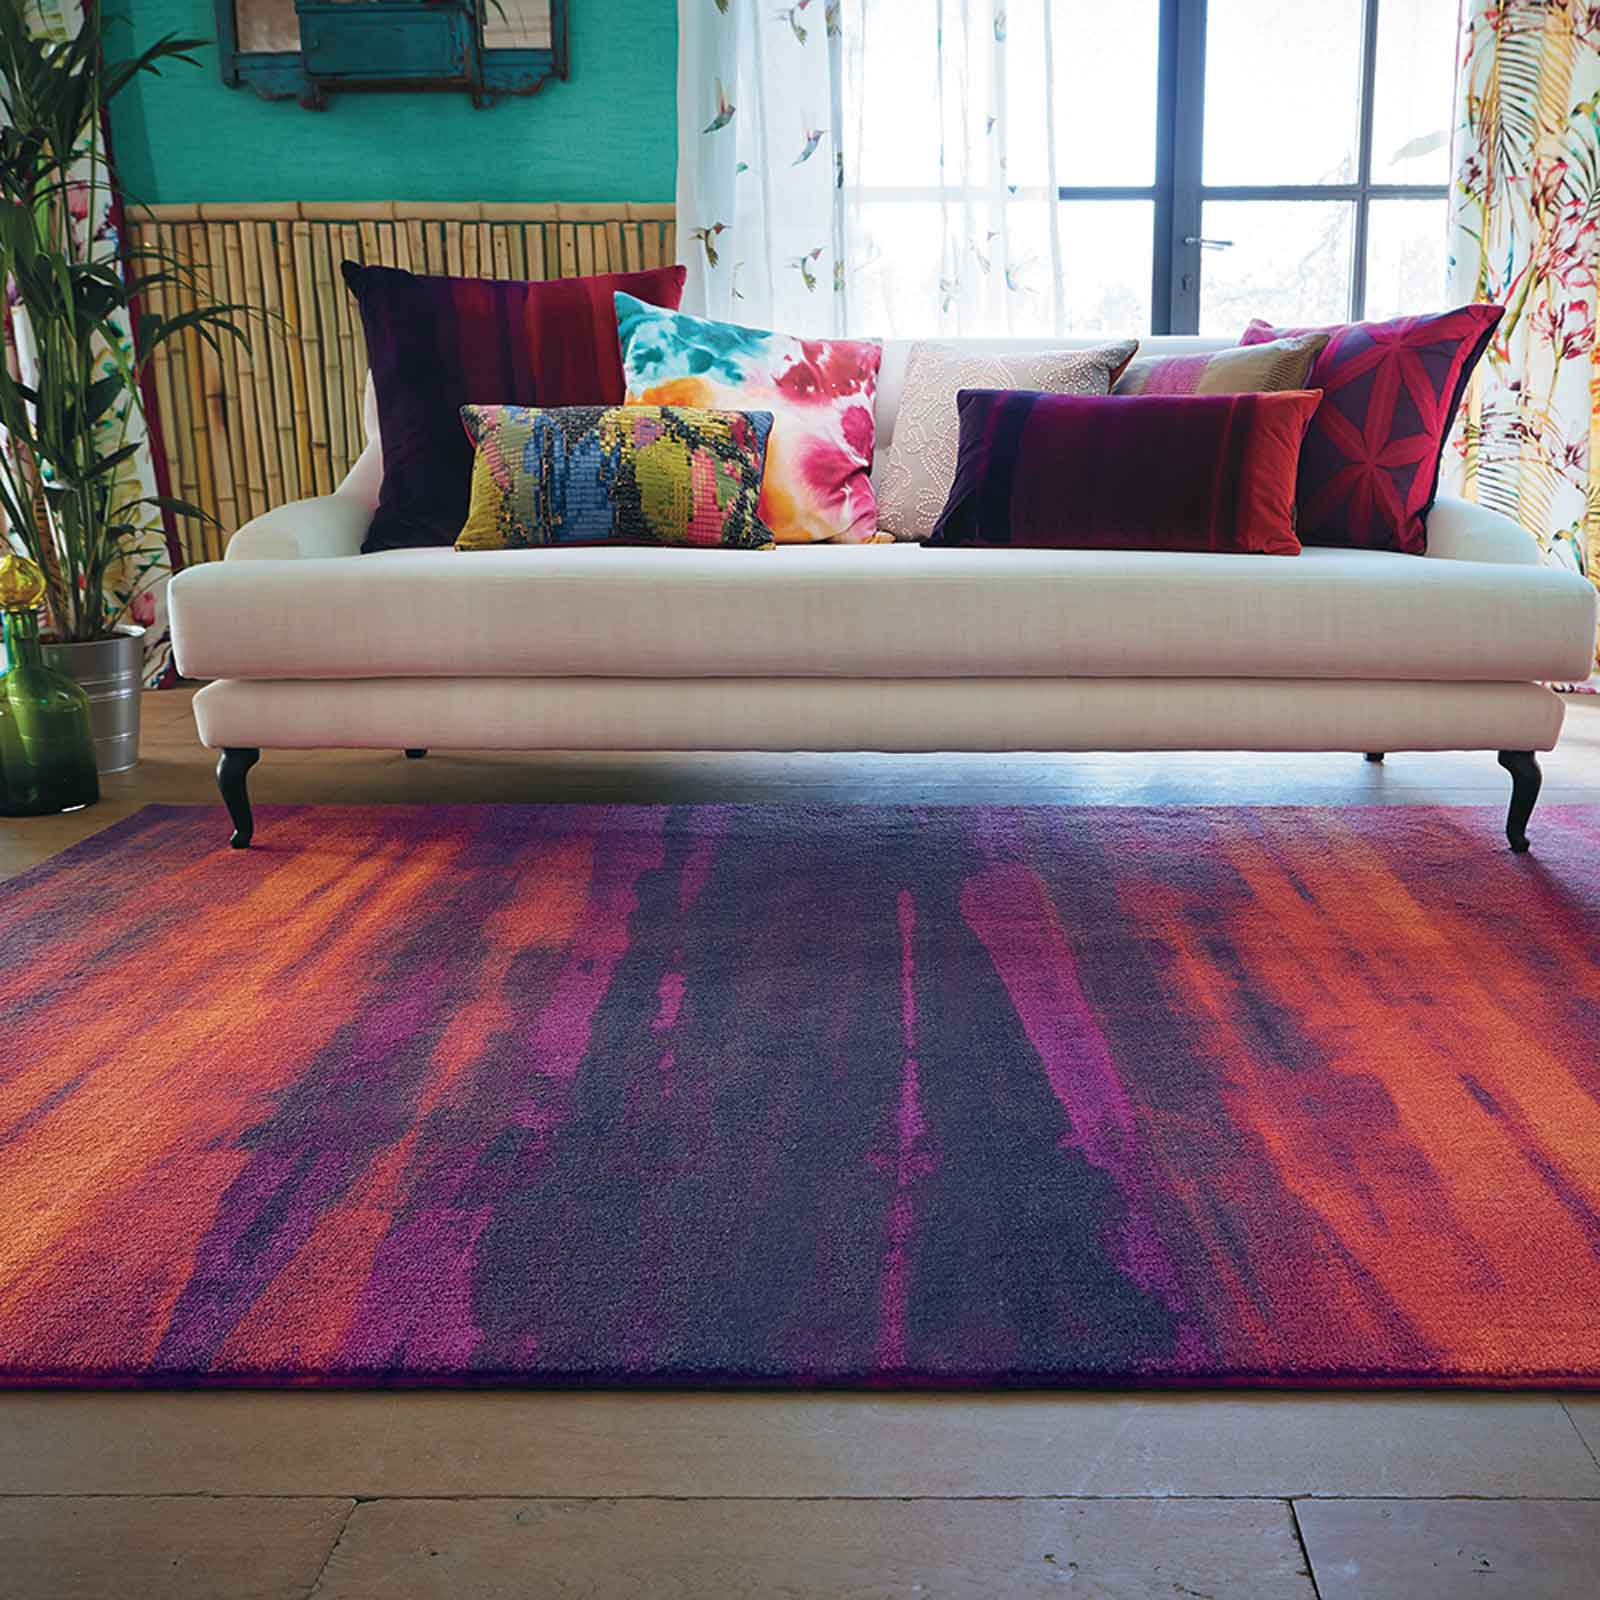 Harlequin Amazilia Rugs 41600 in Loganberry